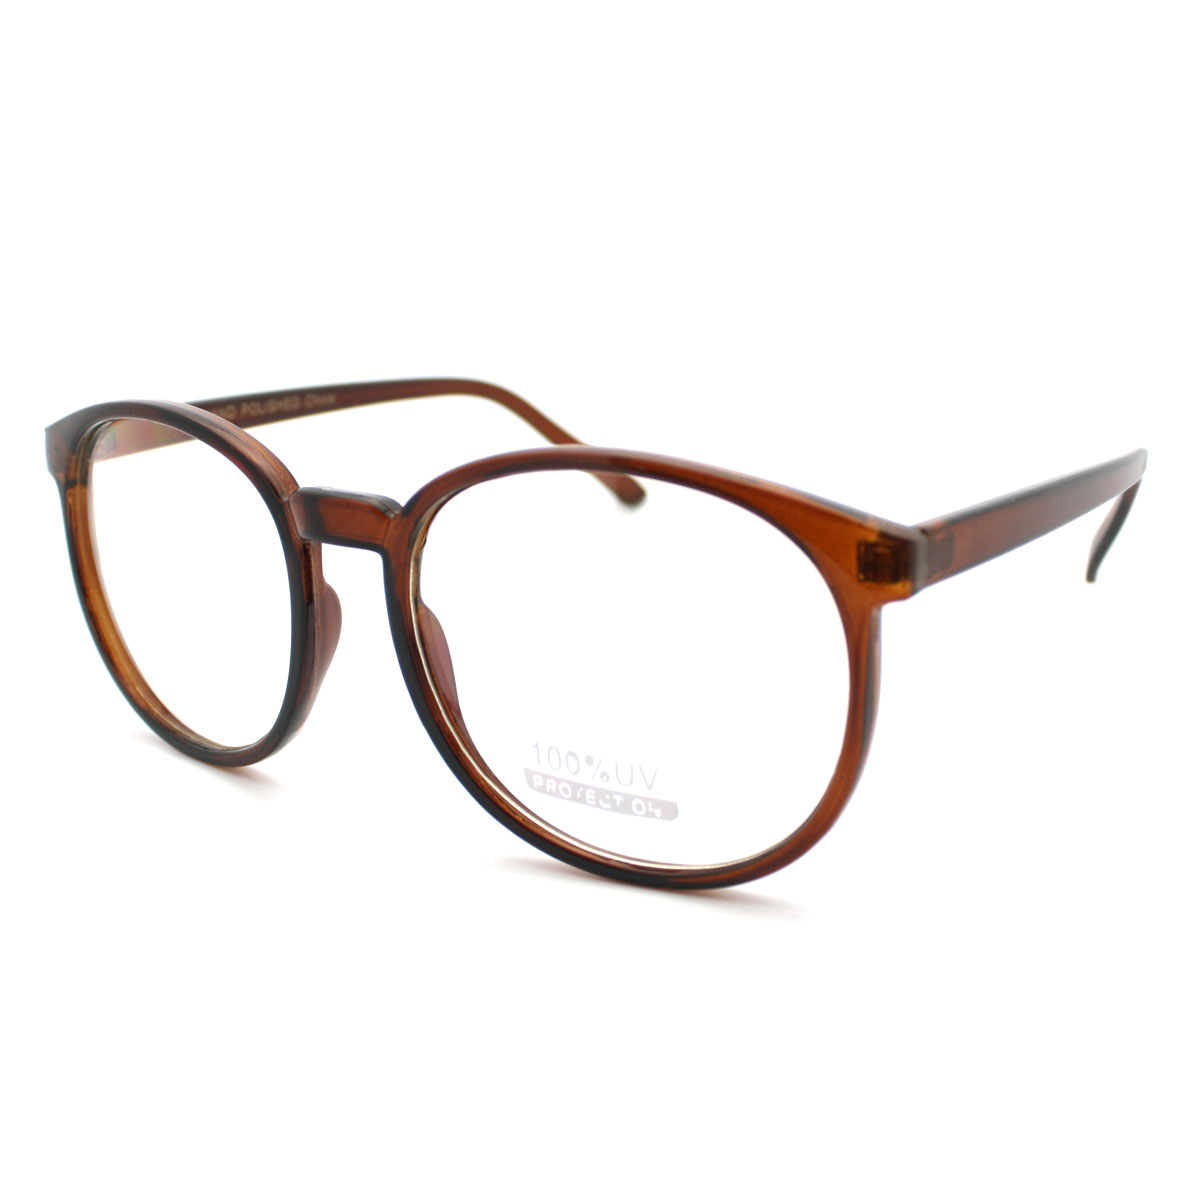 Large Thin Frame Glasses : Geeky Thin Plastic Frame Large Round Clear Lens Eye ...